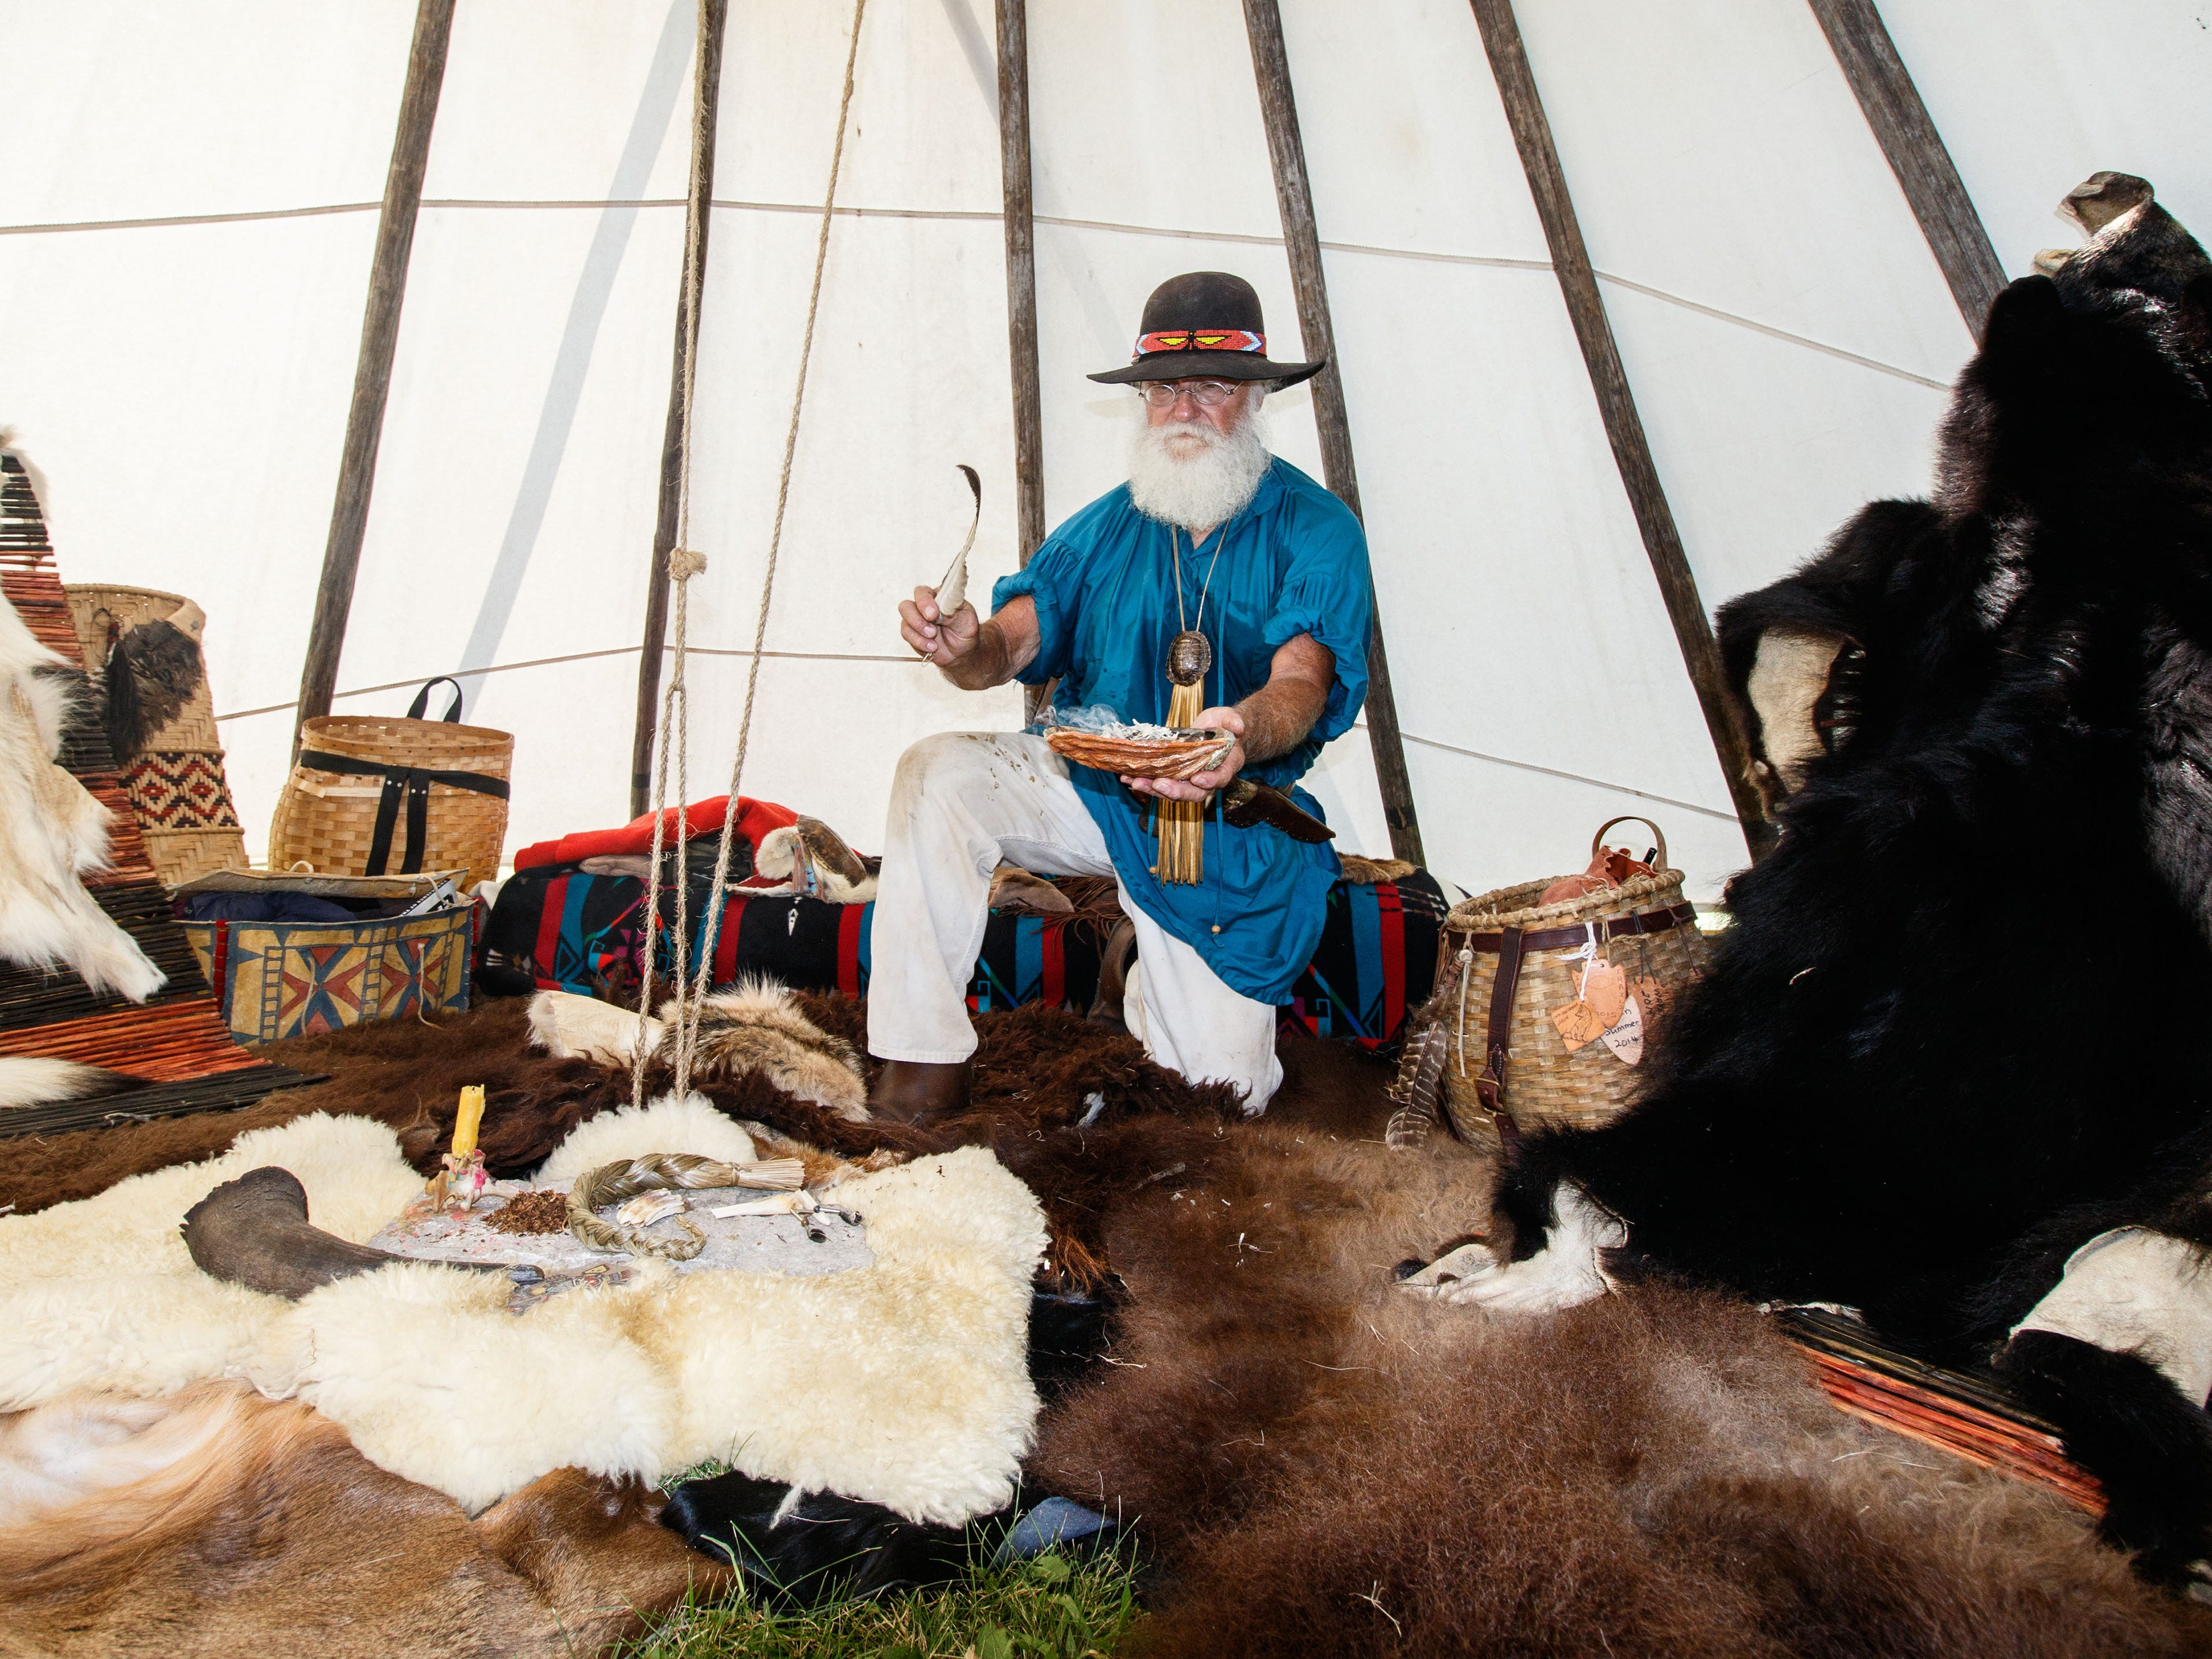 Turtle Joe Wacker of Waukesha invites guests to explore his 1840's fur trapper teepee during the Heritage Weekend living history event in Lisbon Community Park on Saturday, August 11, 2018.